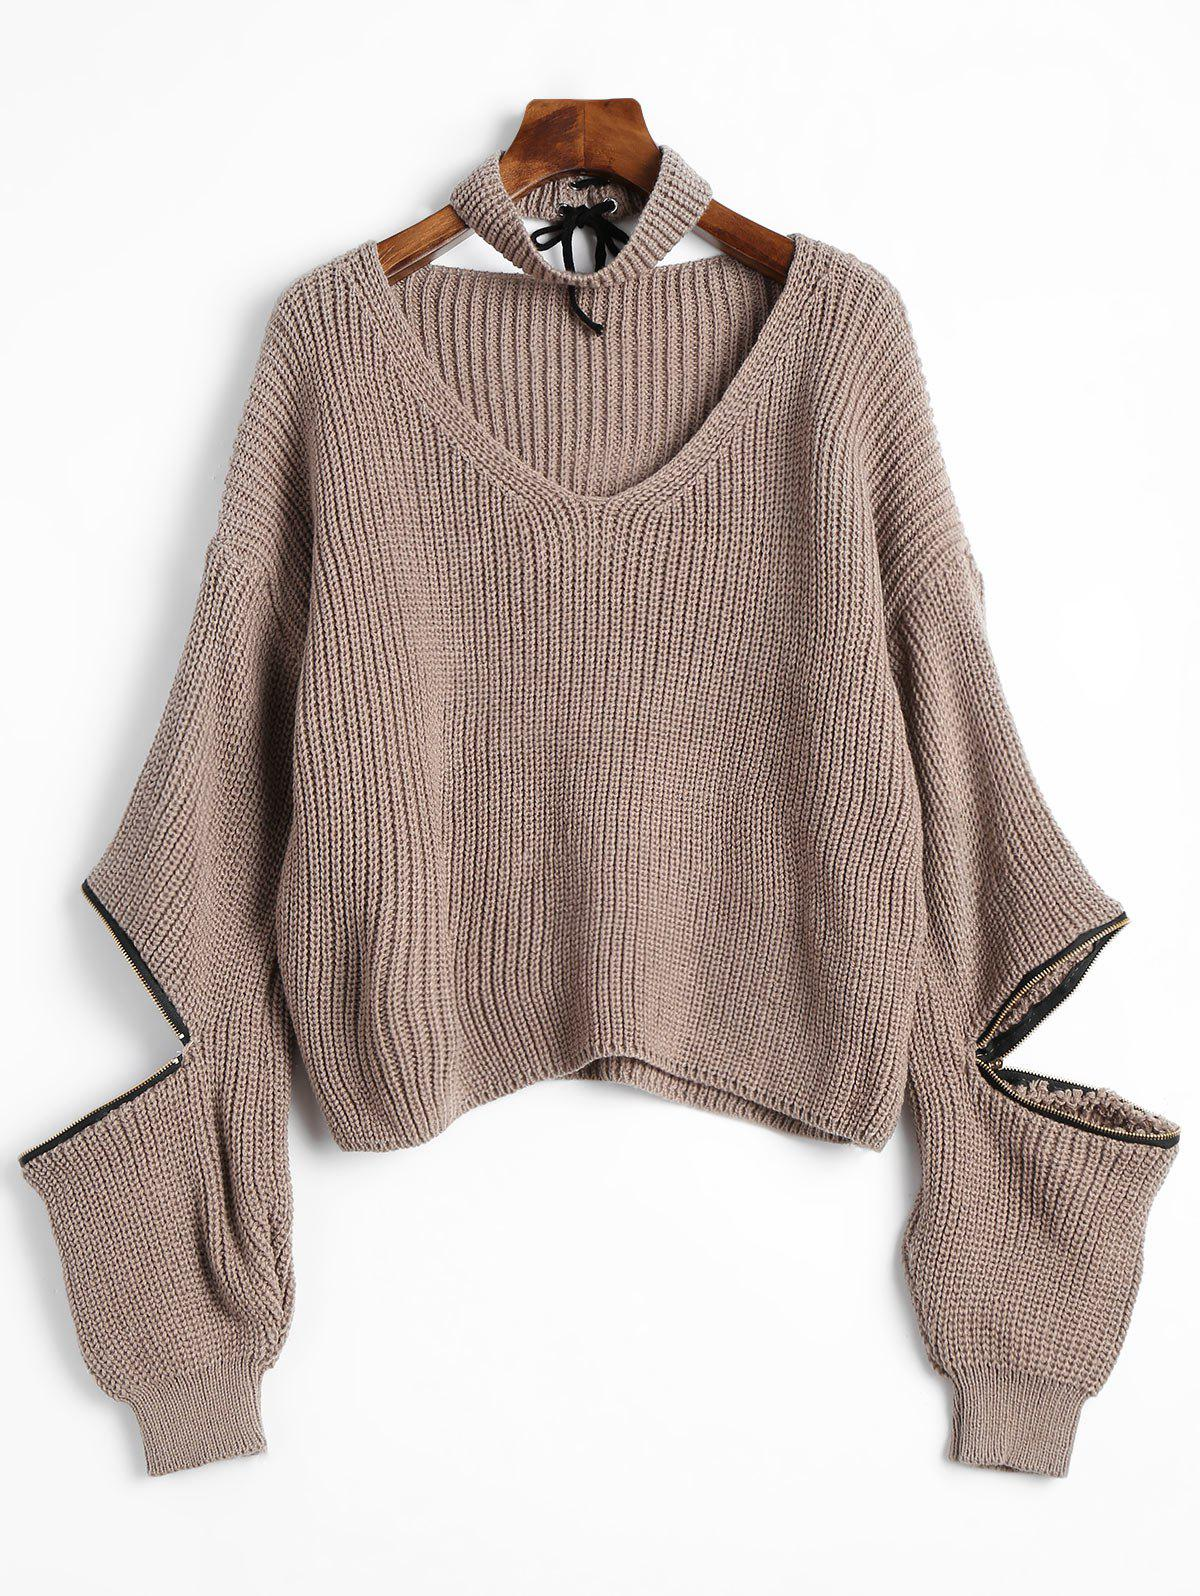 V Neck Zip Embellished Sweater with ChokerWOMEN<br><br>Size: ONE SIZE; Color: KHAKI; Type: Pullovers; Material: Acrylic; Sleeve Length: Full; Collar: V-Neck; Style: Fashion; Pattern Type: Solid; Season: Fall,Spring,Winter; Weight: 0.4650kg; Package Contents: 1 x Sweater 1 x Choker;